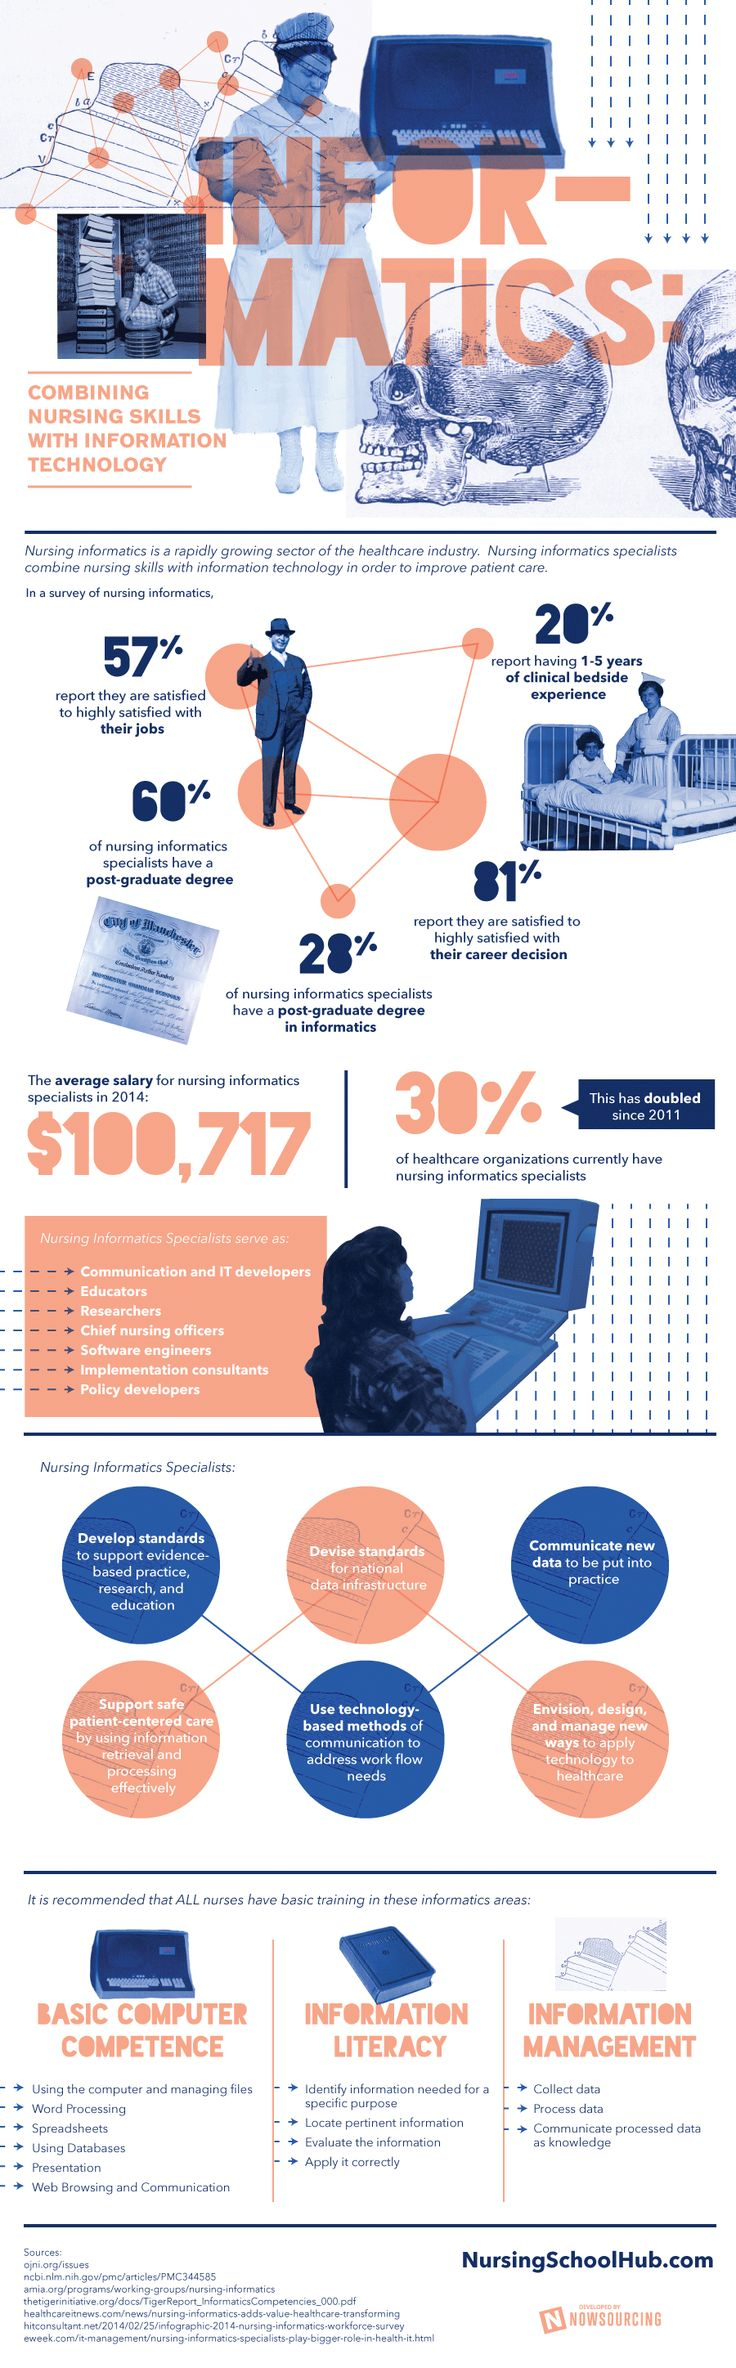 Nursing Informatics Infographic: About the role/what they do #NursingInformatics  #ITNurse #Infographic